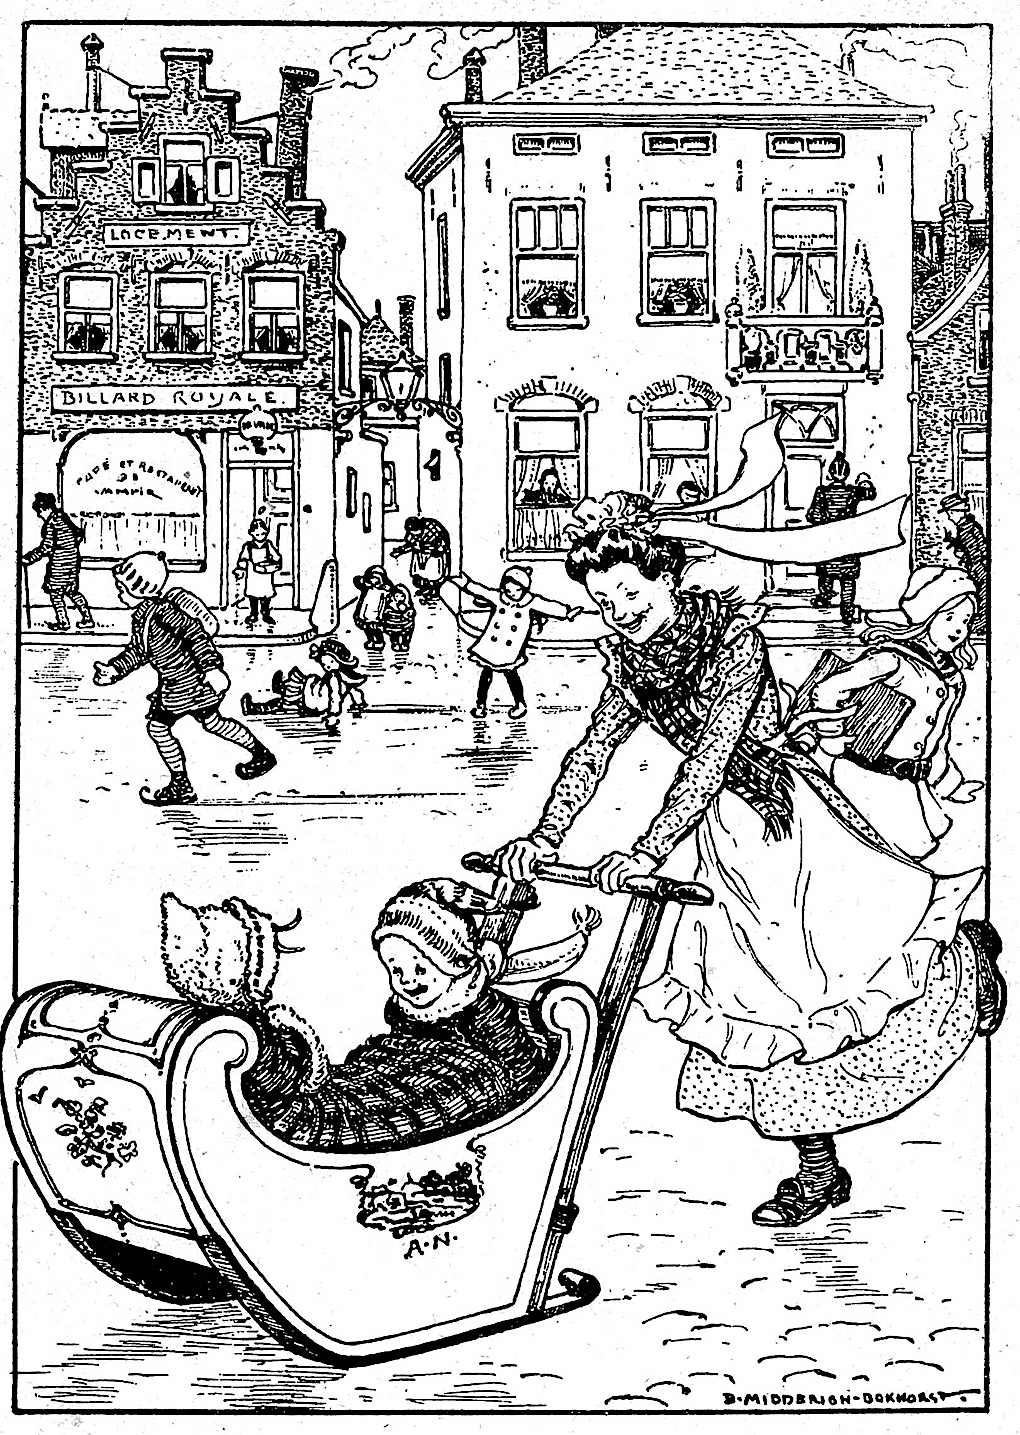 1915 Netherlands winter fun on icy streets, an illustration